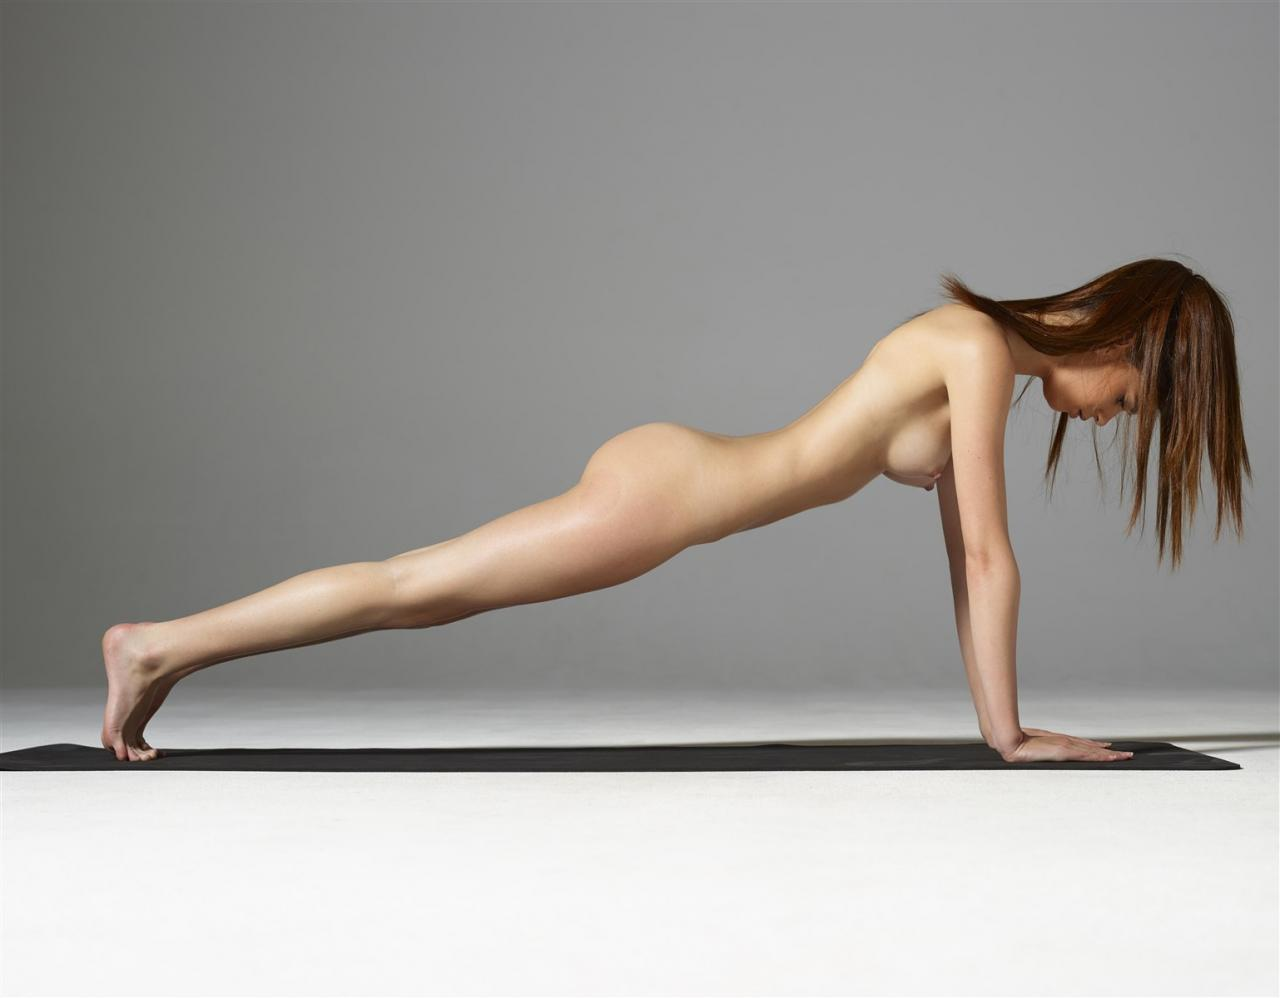 Posing nude pictures